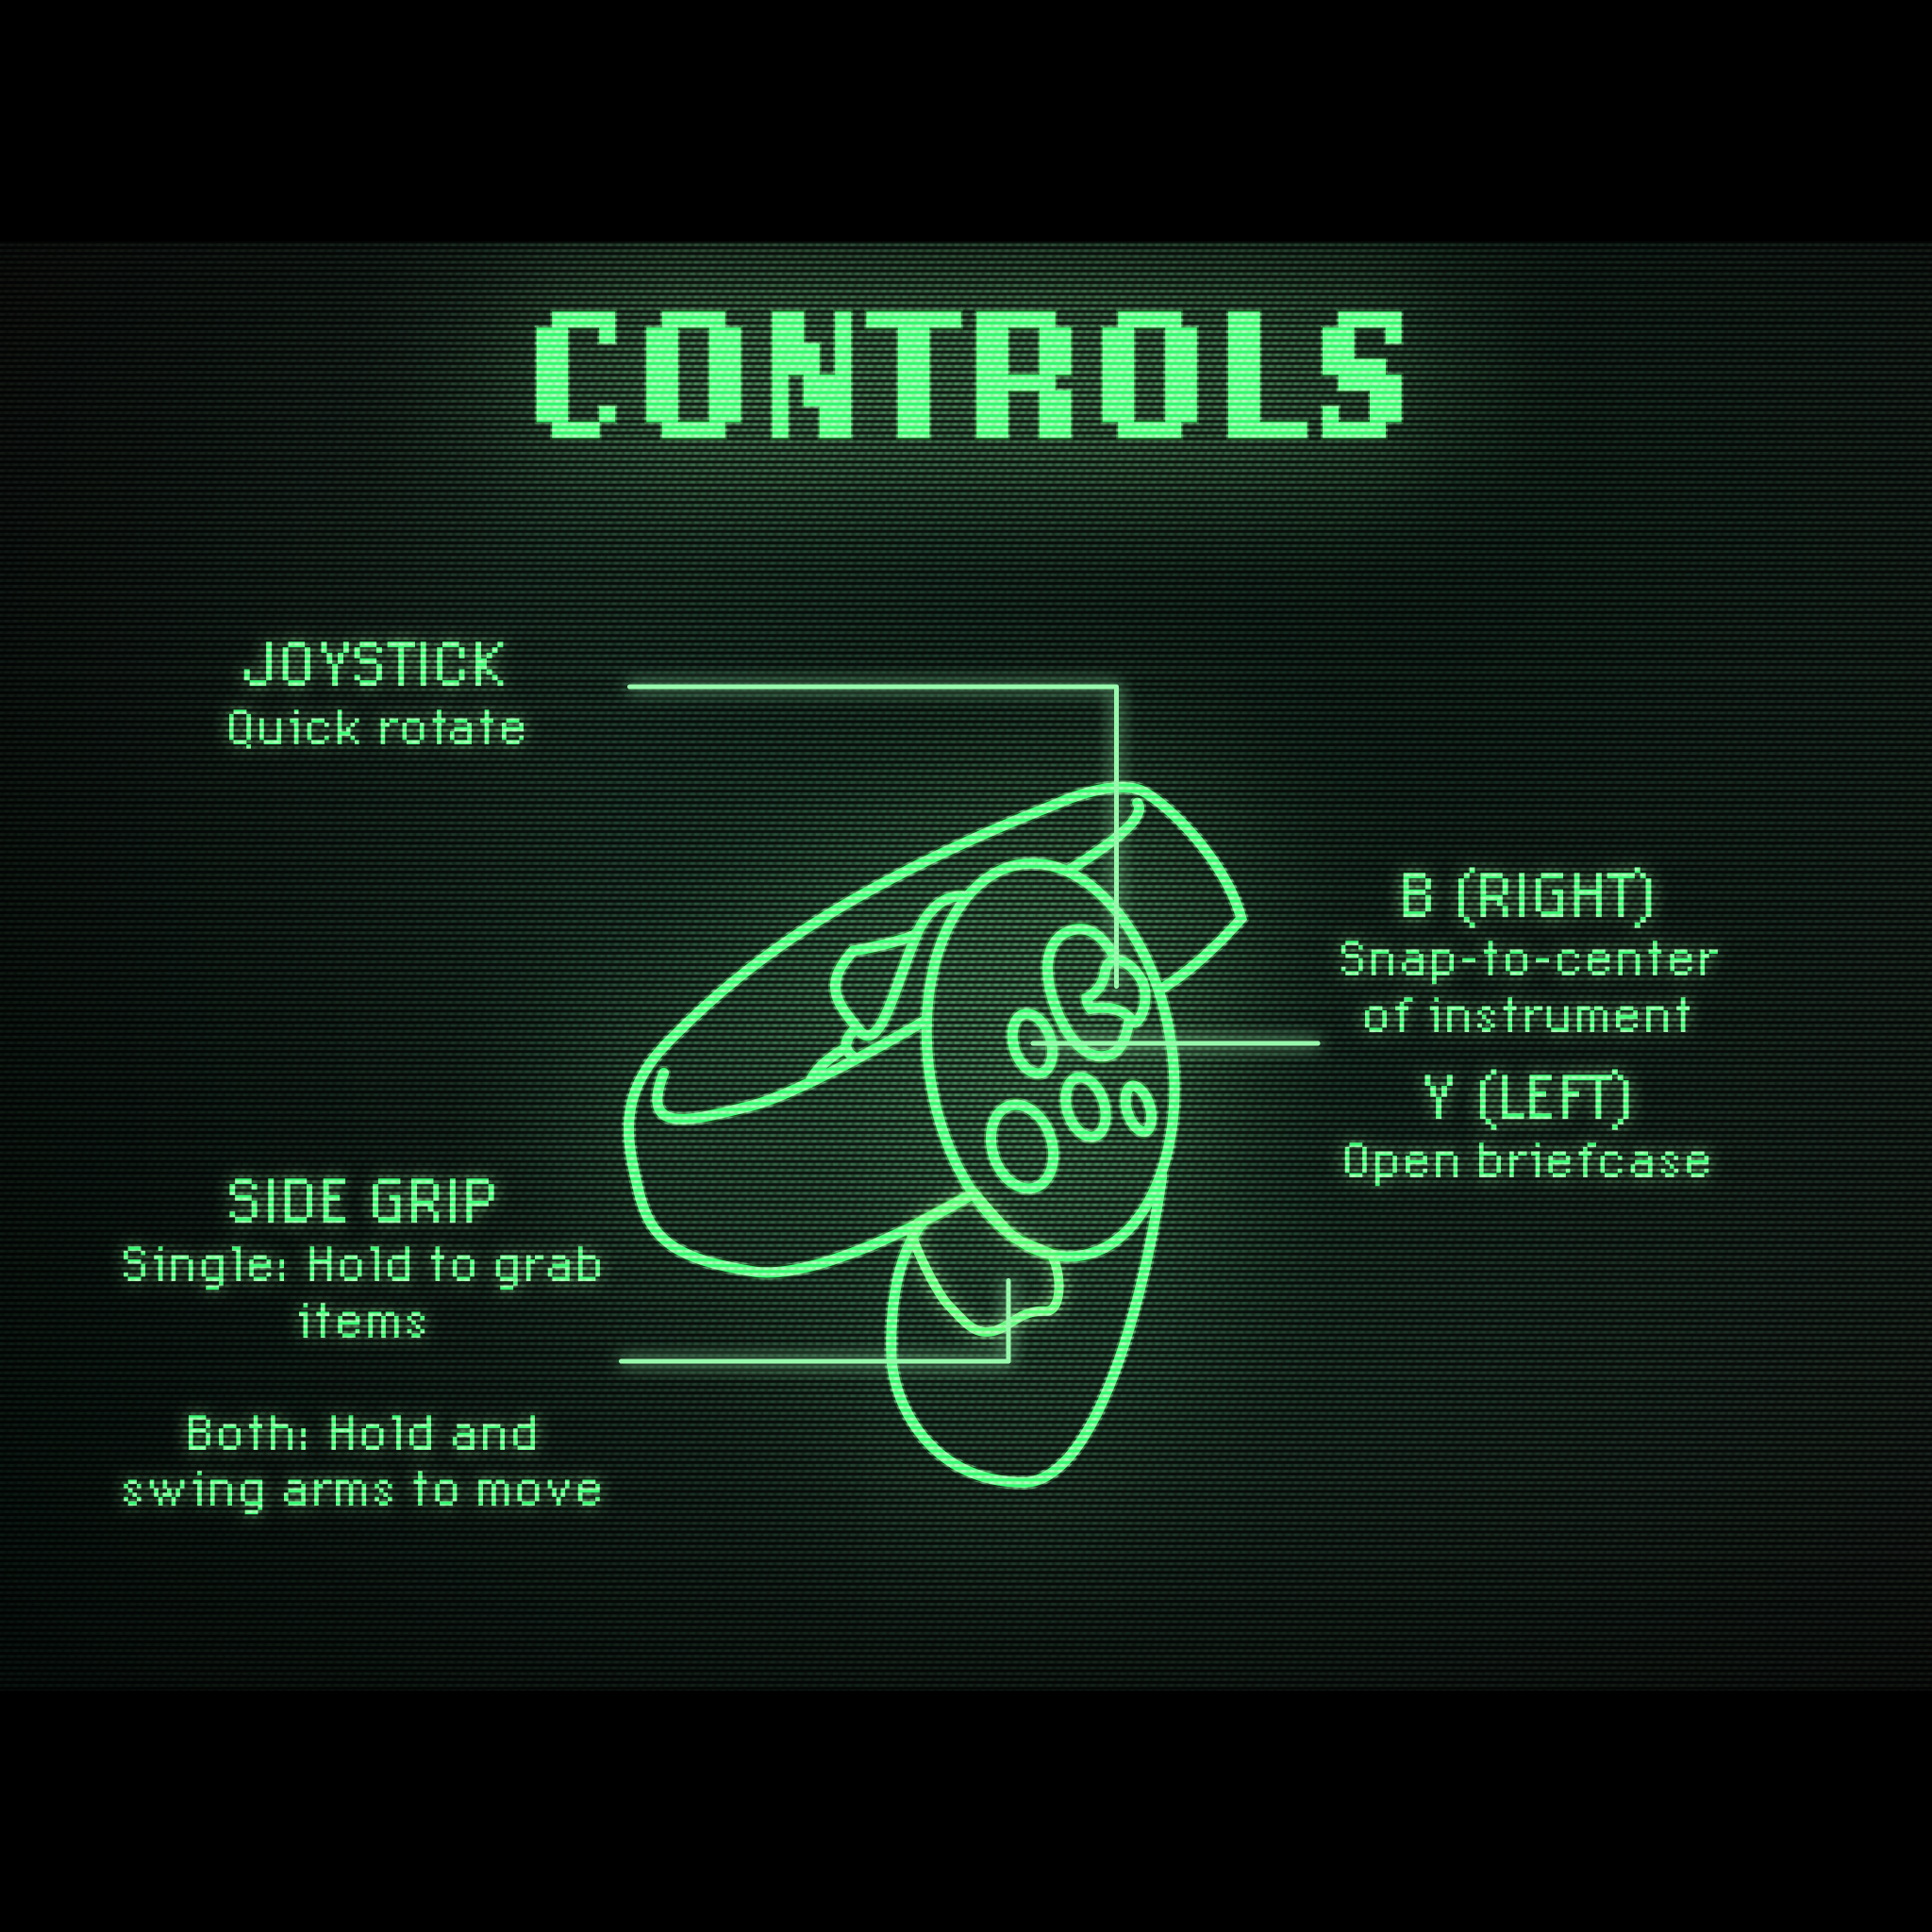 A diagram showing what each button on the Oculus Touch controllers does